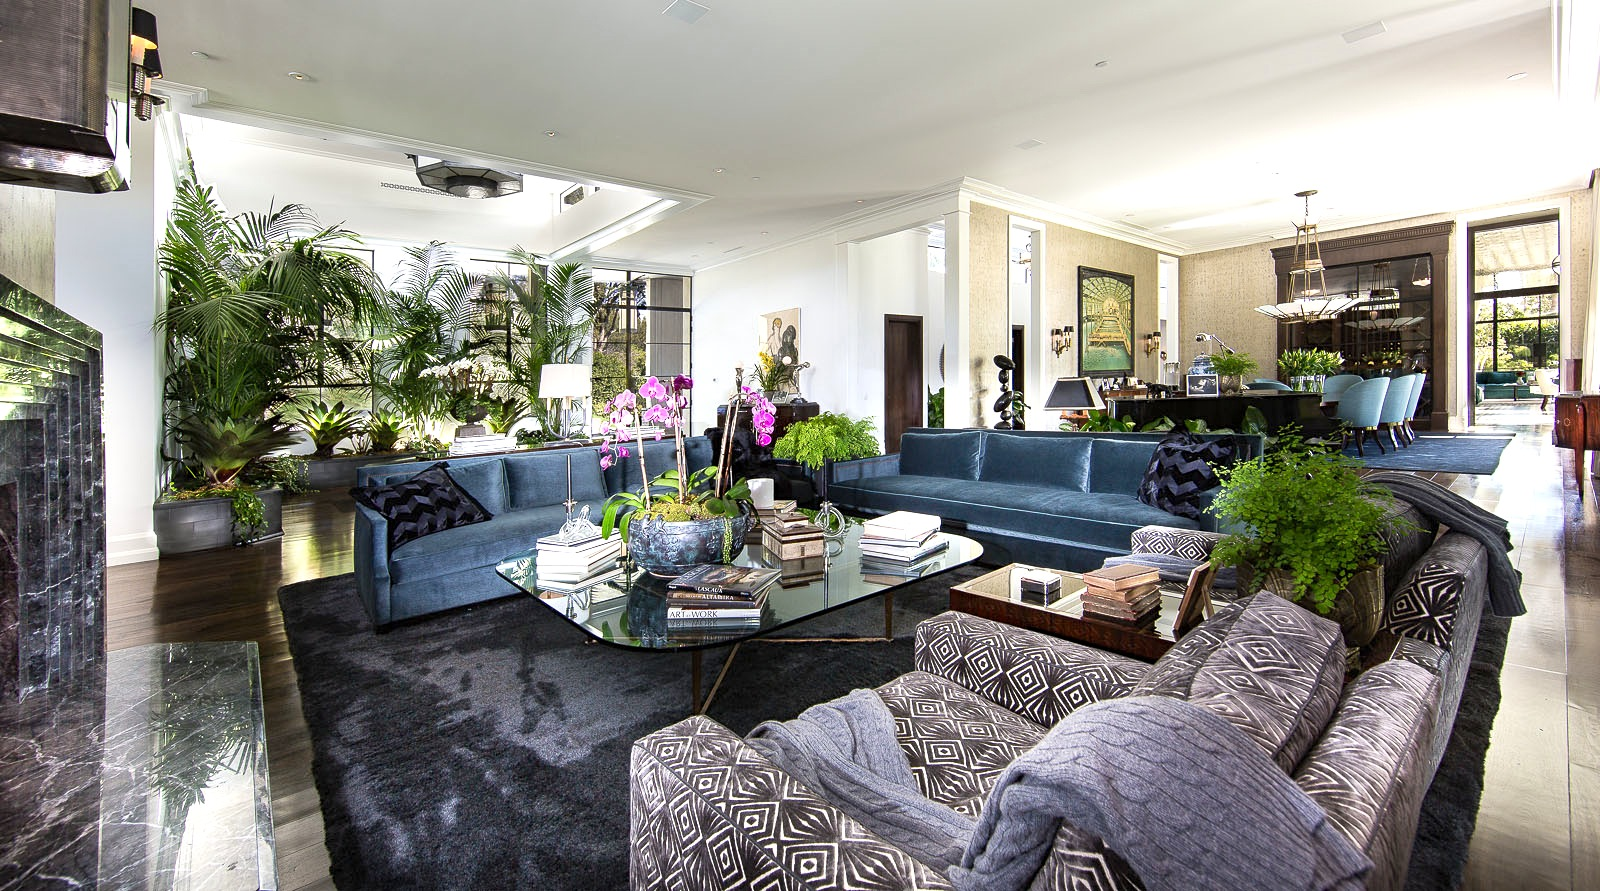 COCOCOZY 25 MILLION DOLLAR ART DECO STYLE ESTATE SEE THIS HOUSE